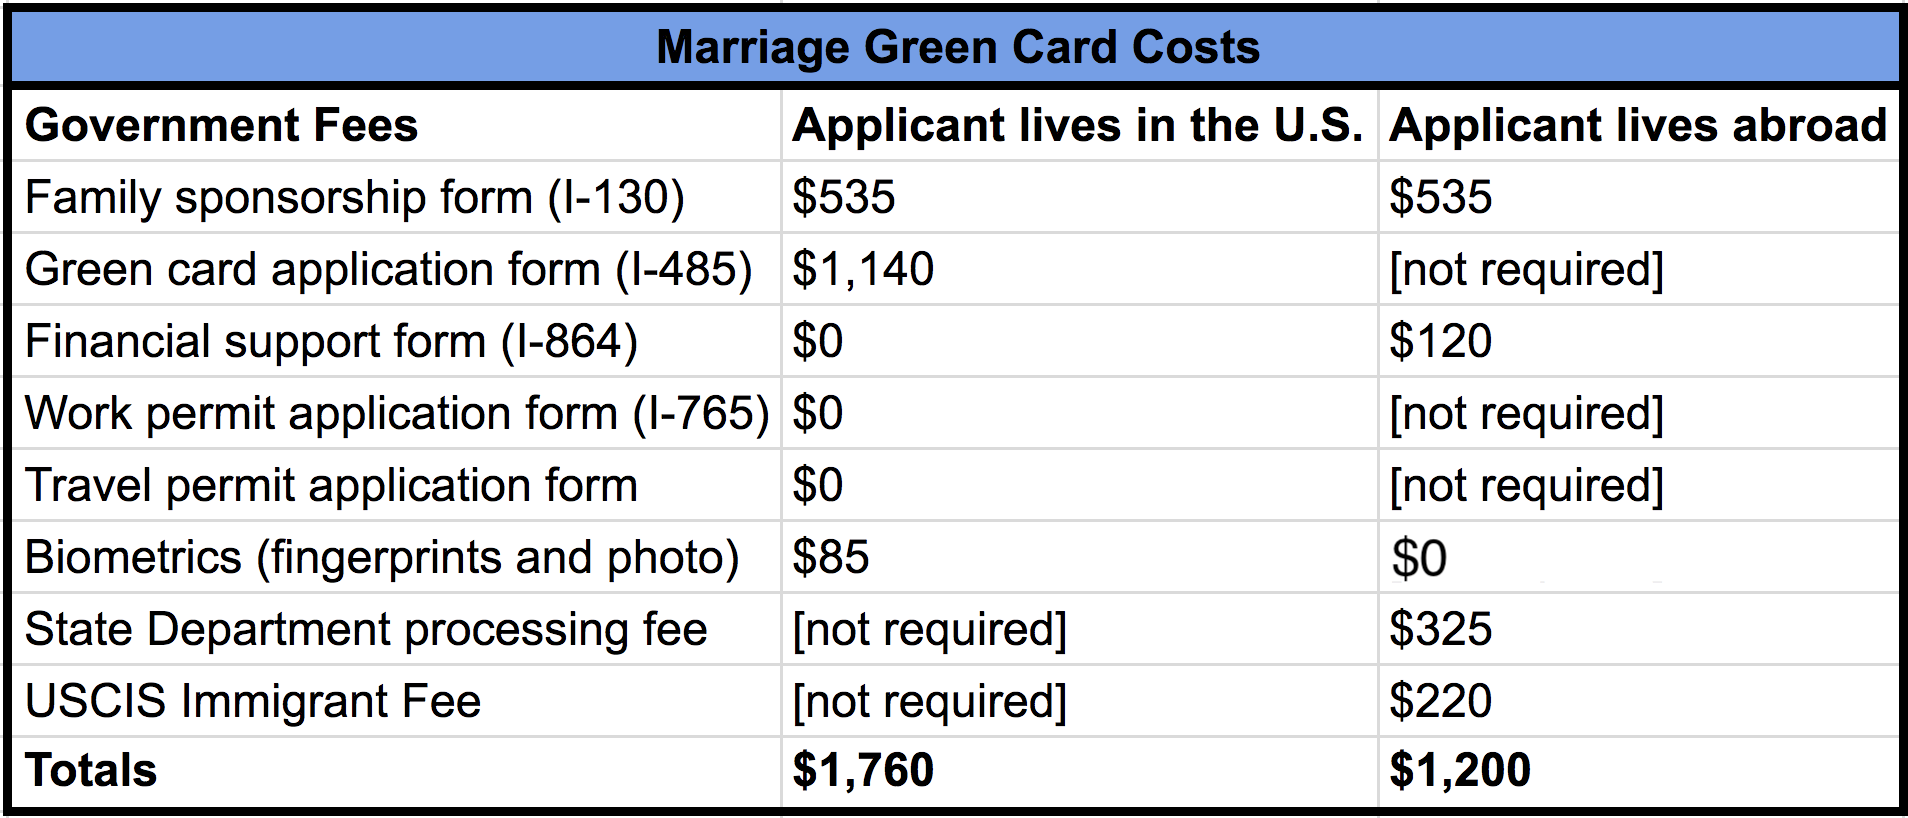 How much does a marriage green card cost?